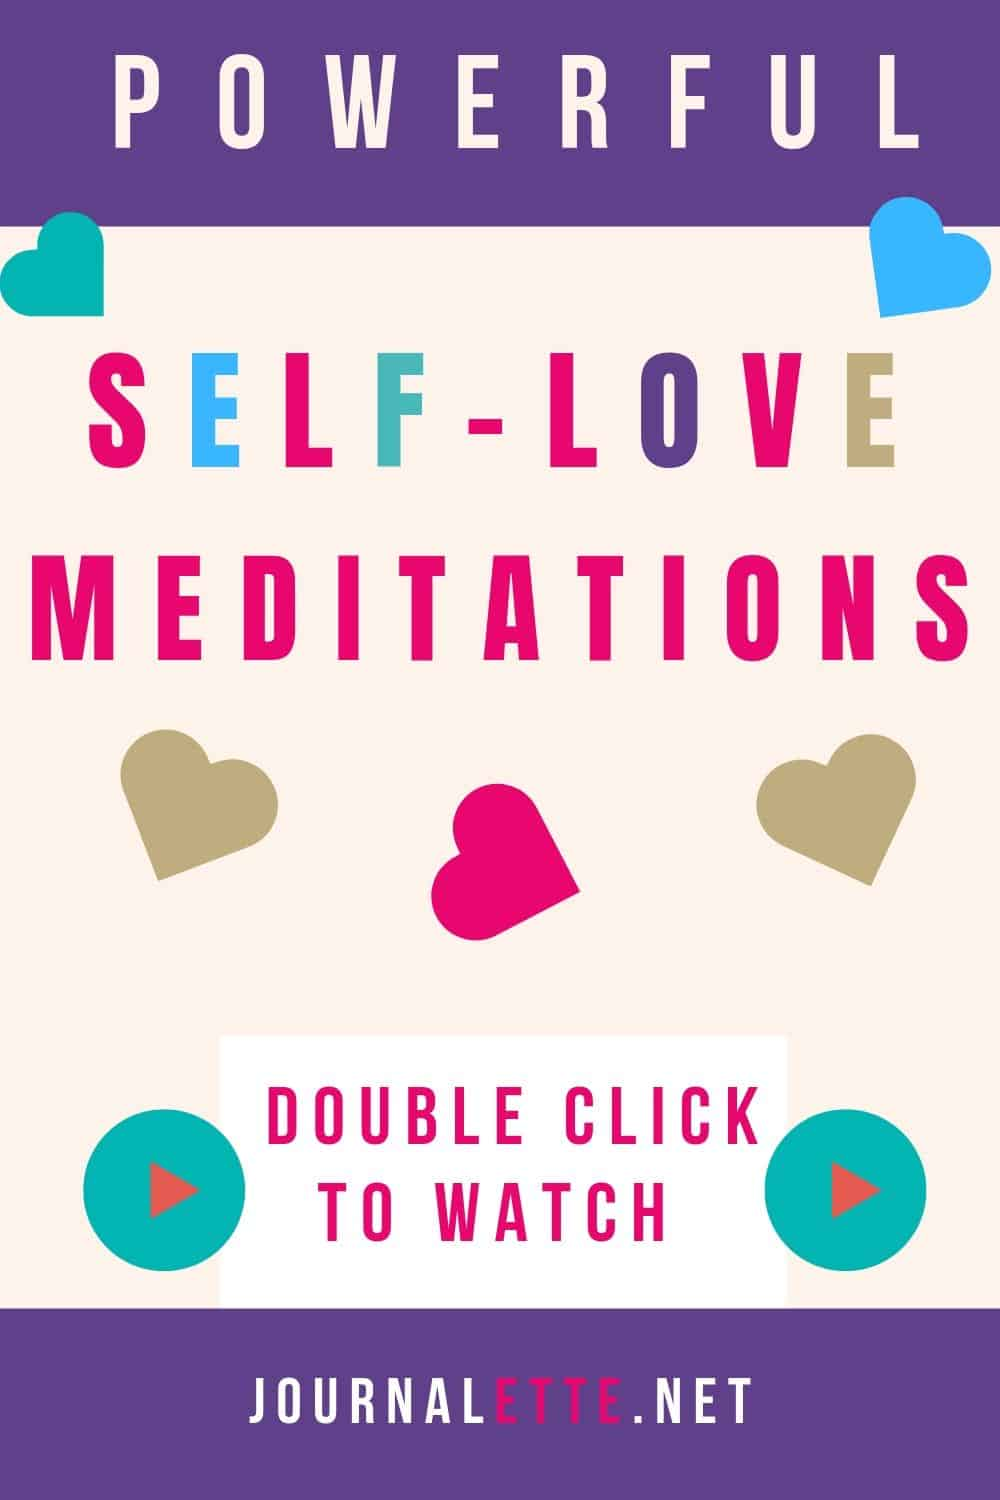 text box with heart shapes and the words powerful self-love meditations double click to watch